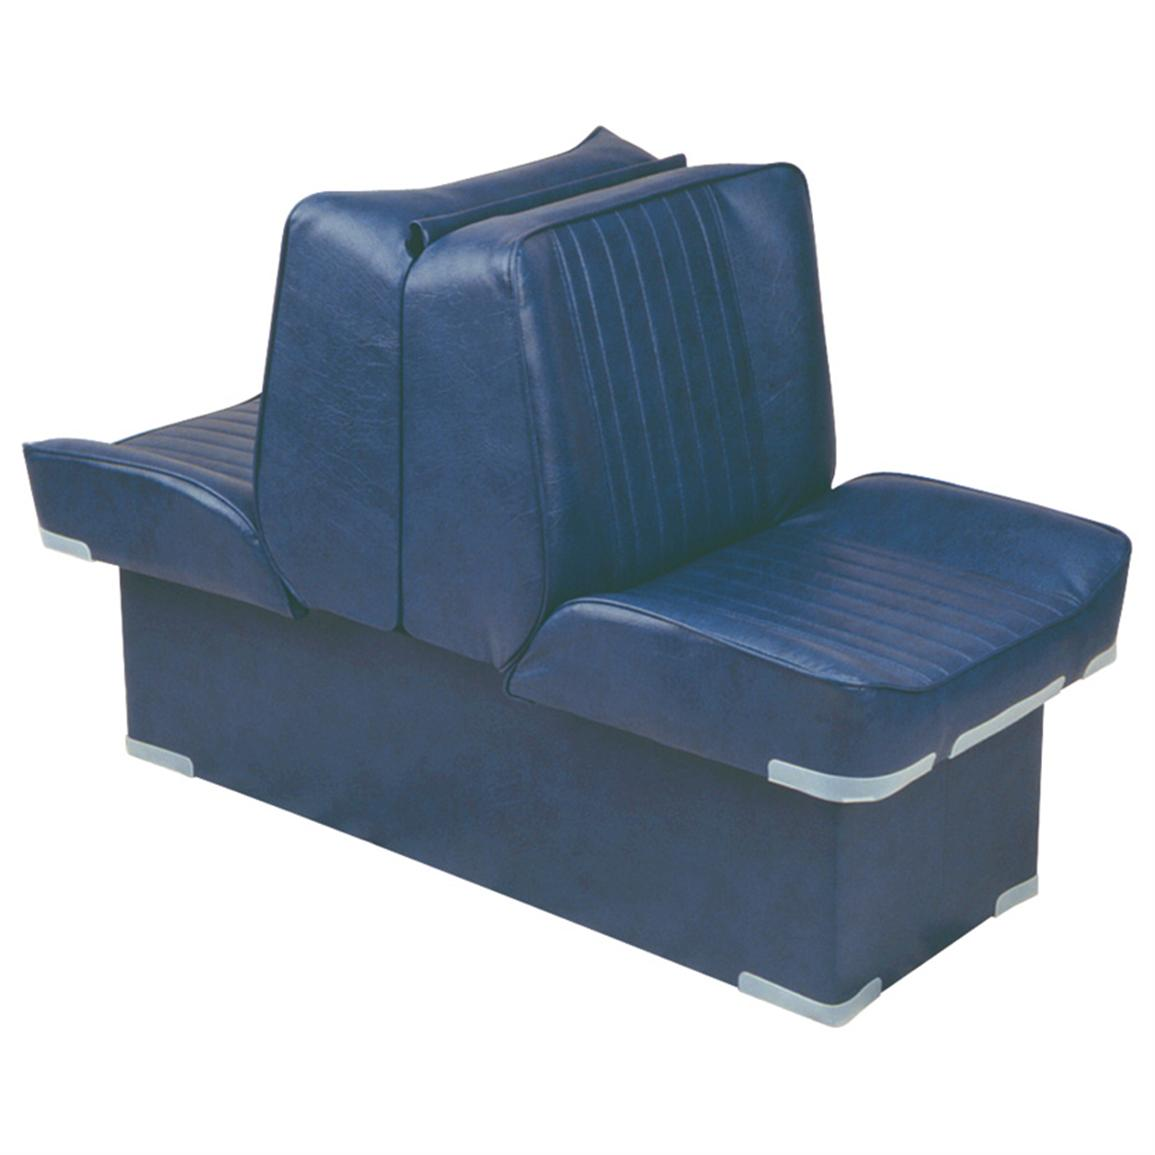 Wise Deluxe Boat Lounge Seat, Navy